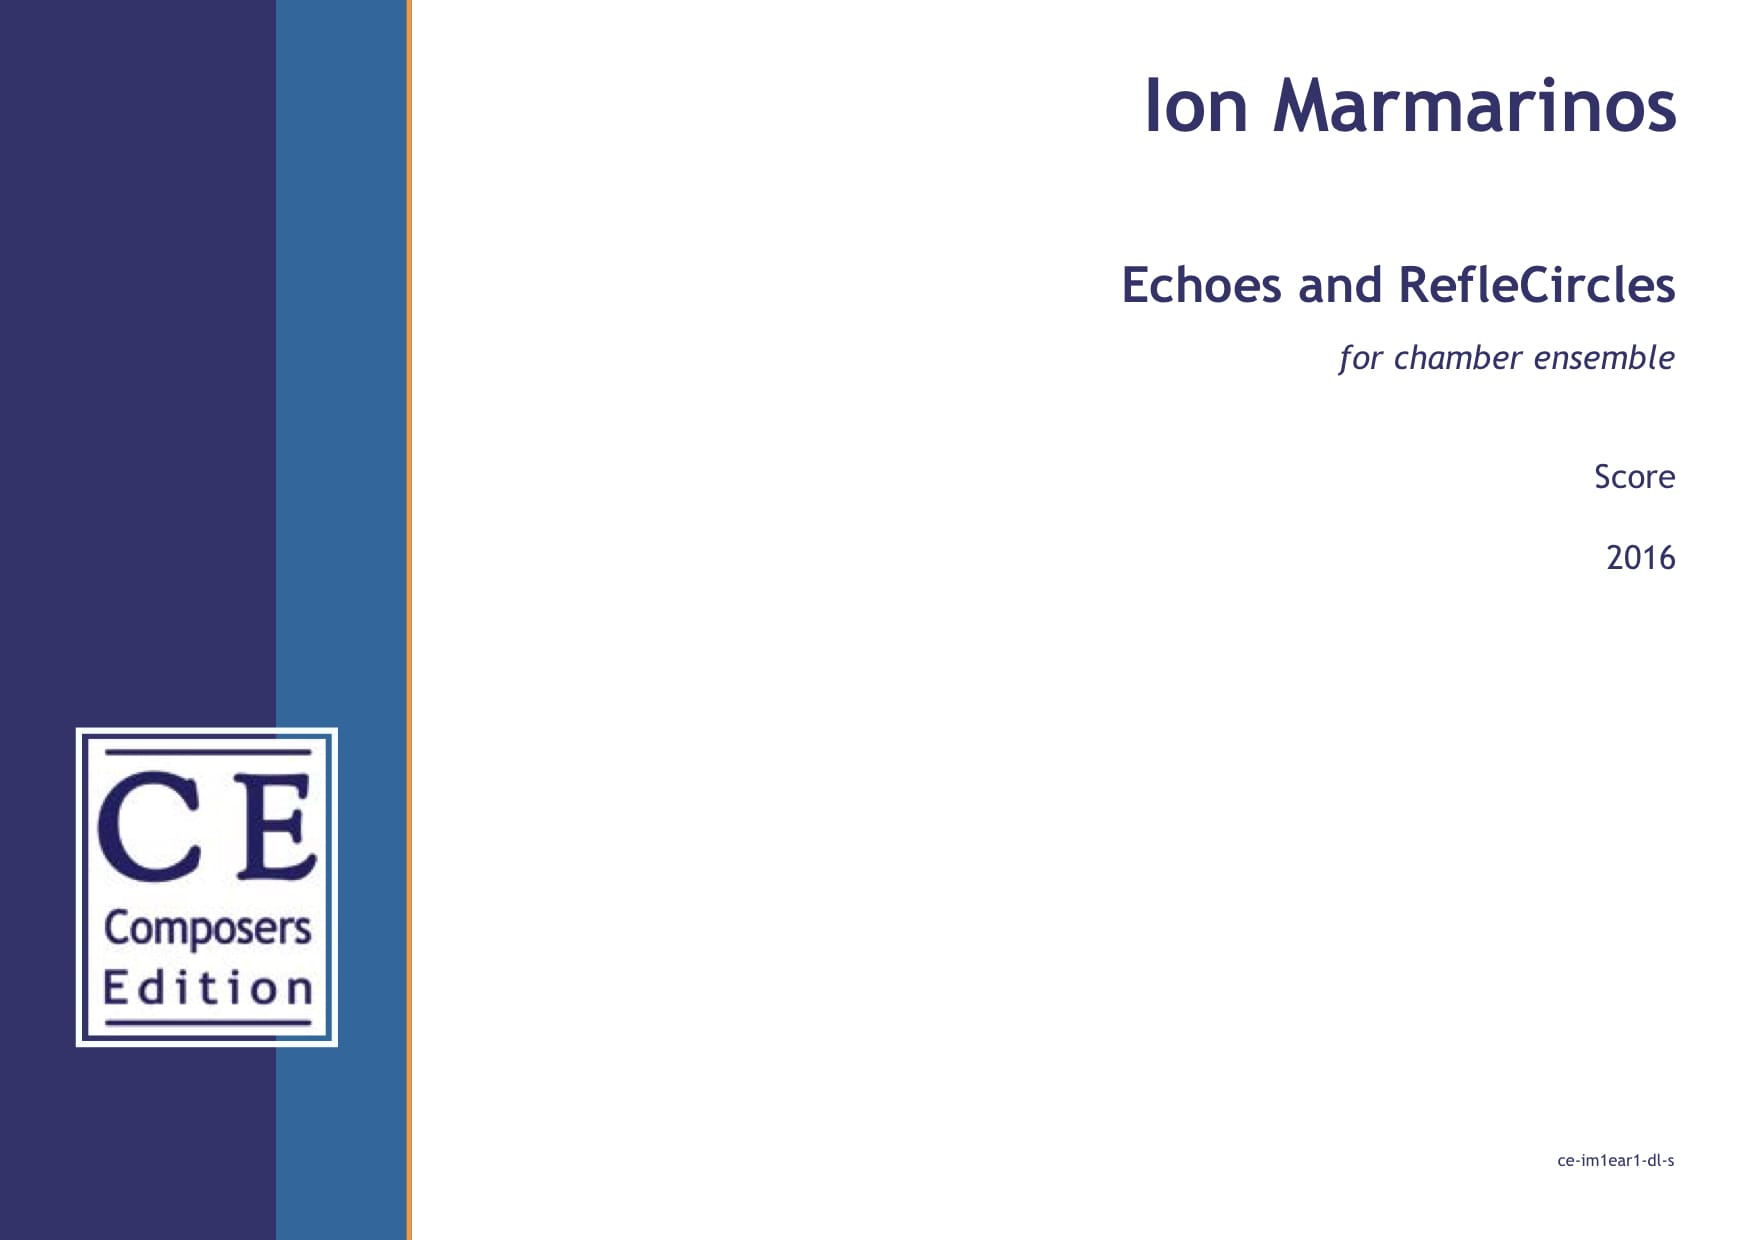 Ion Marmarinos: Echoes and RefleCircles for chamber ensemble